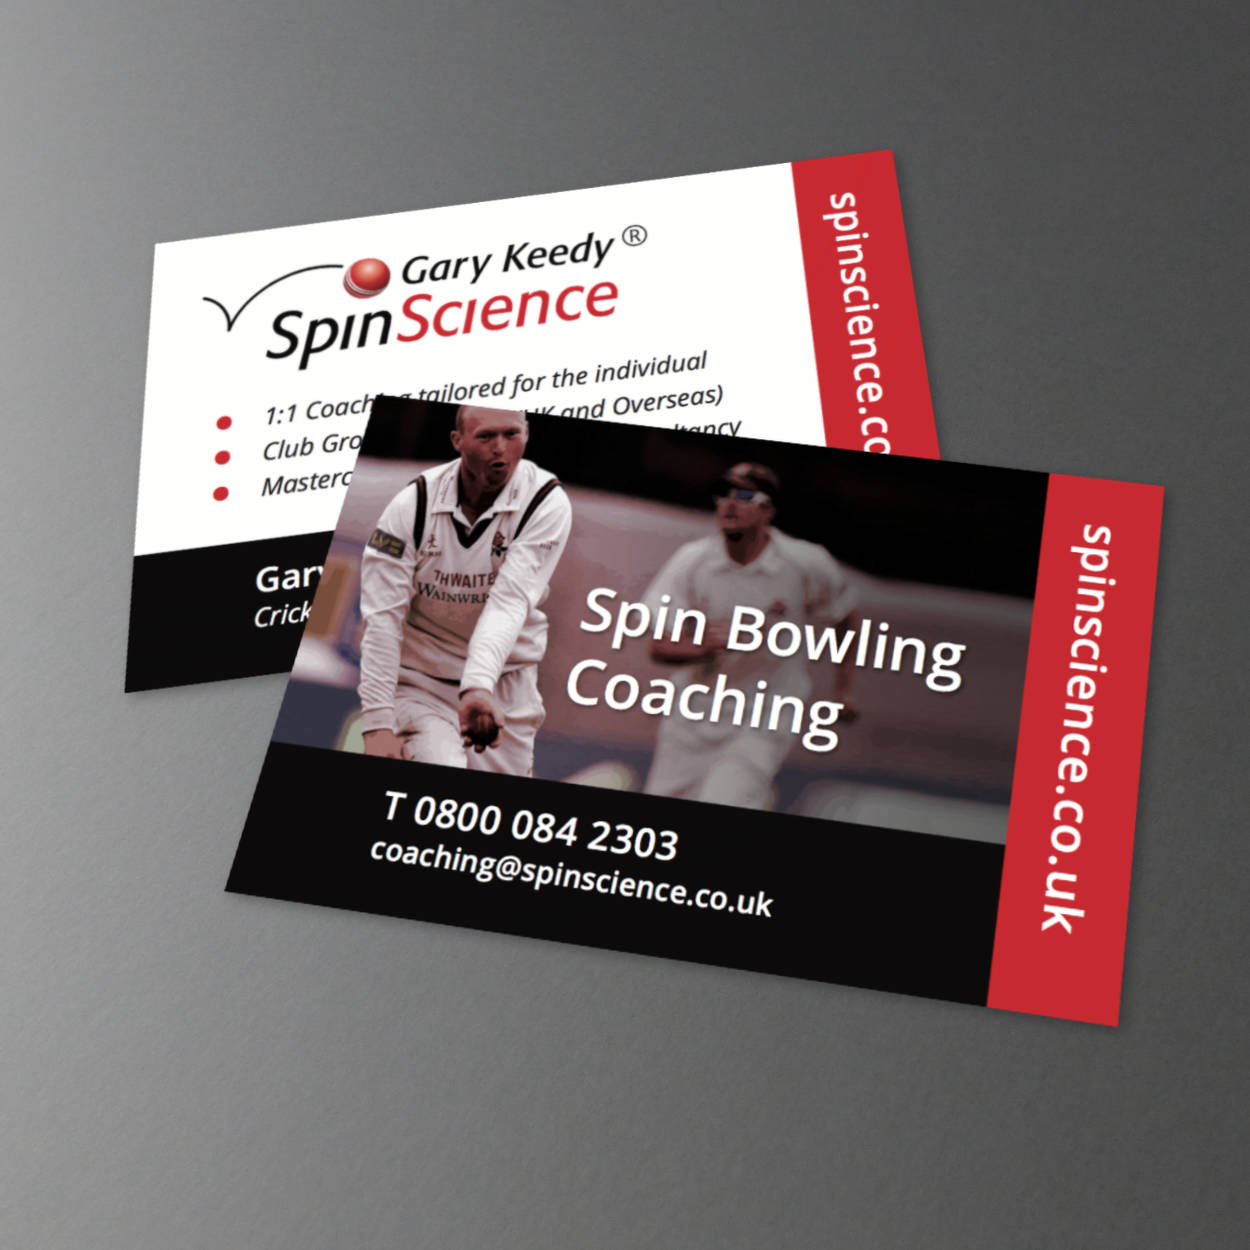 gary-keedy-spinscience-business-cards-design-orangebox-lancashire